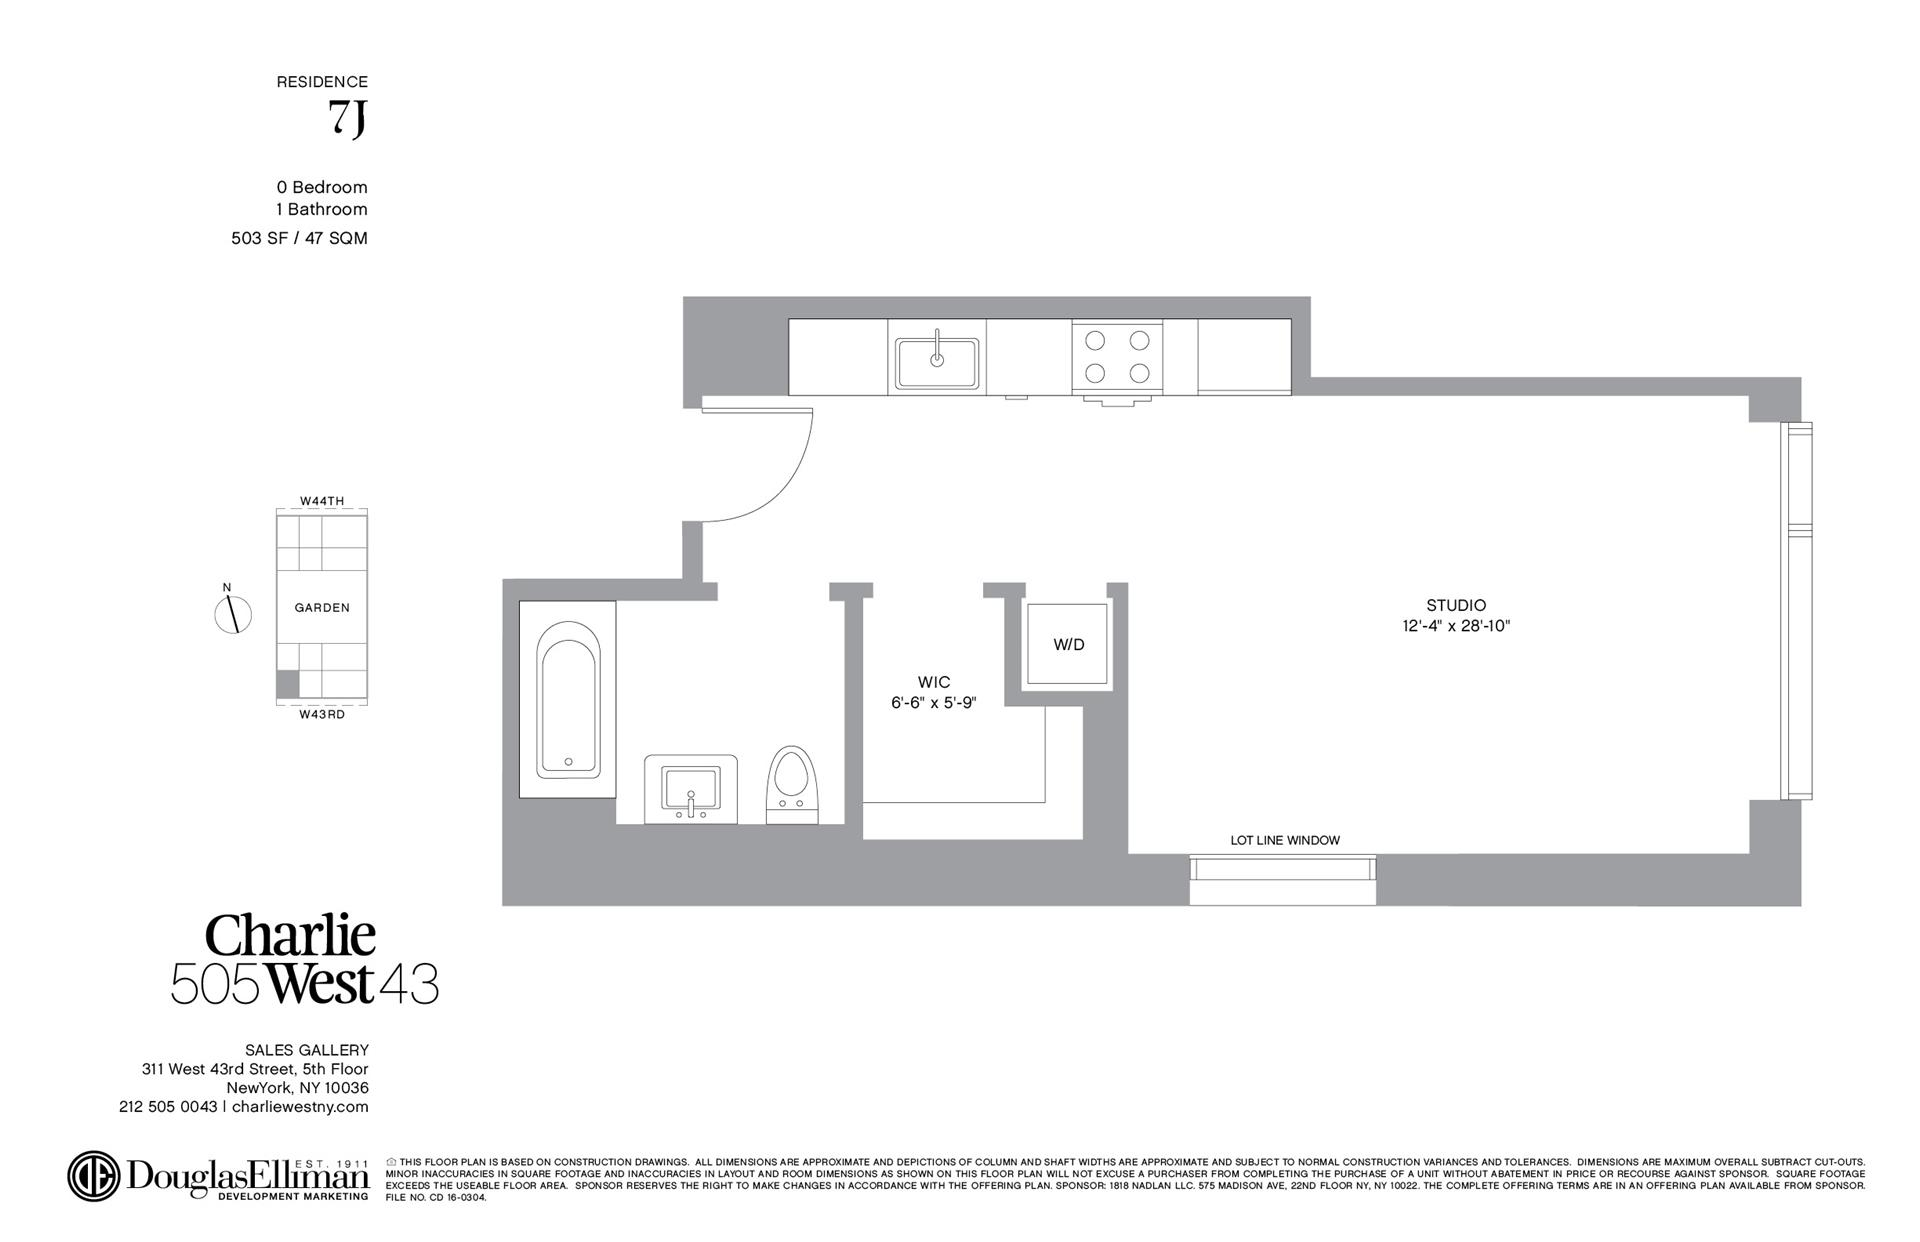 Floor plan of 505 West 43rd Street, 7J - Clinton, New York